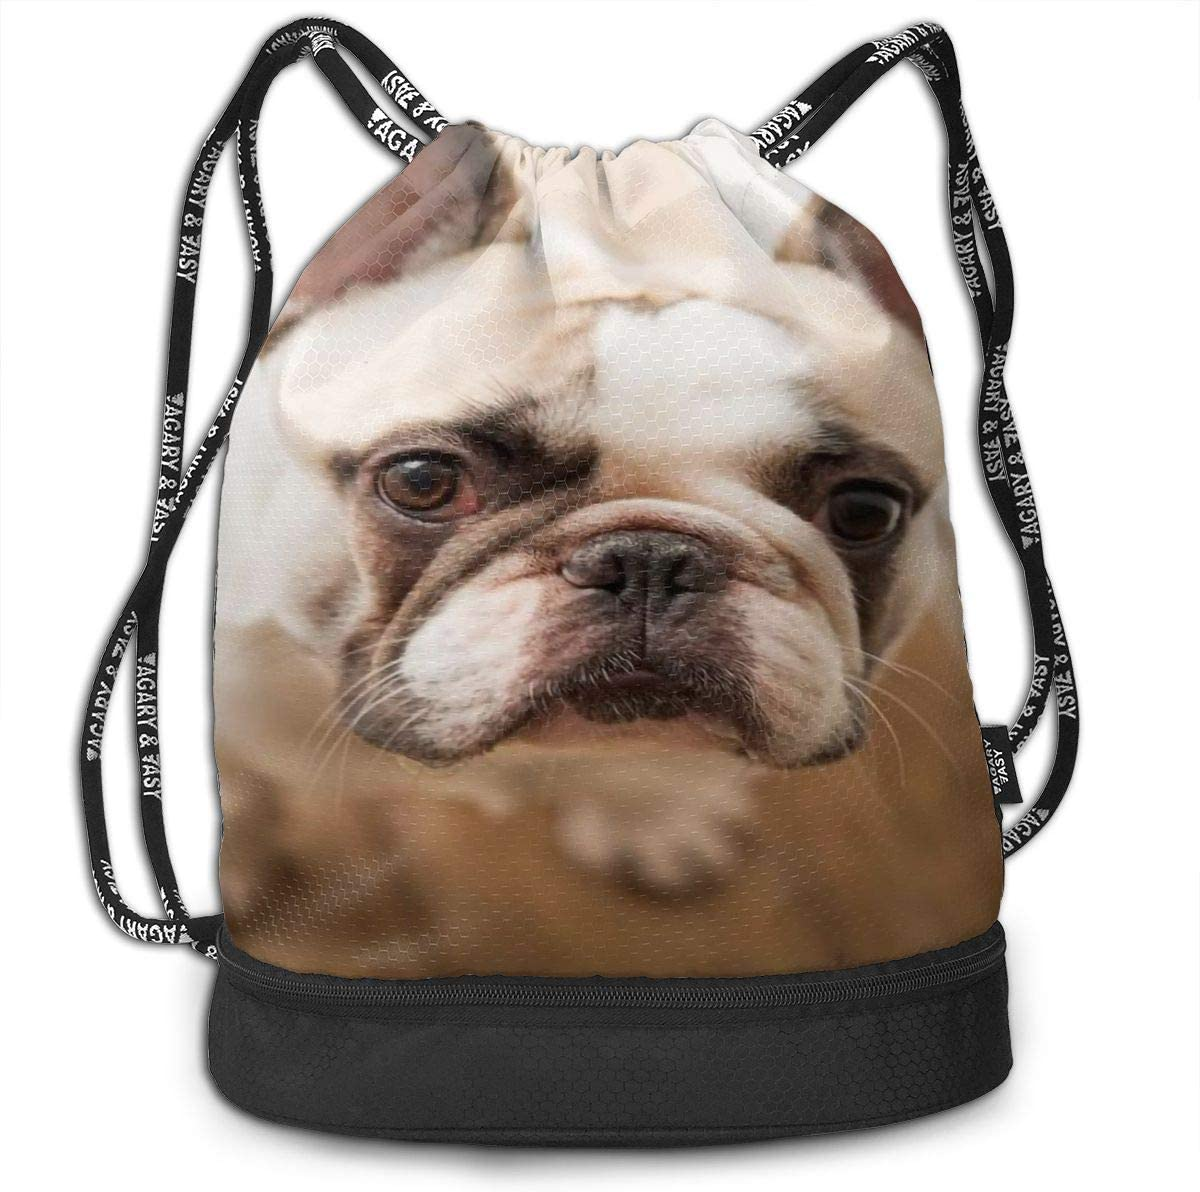 Drawstring Backpack Bulldog Puppy Dog Bags